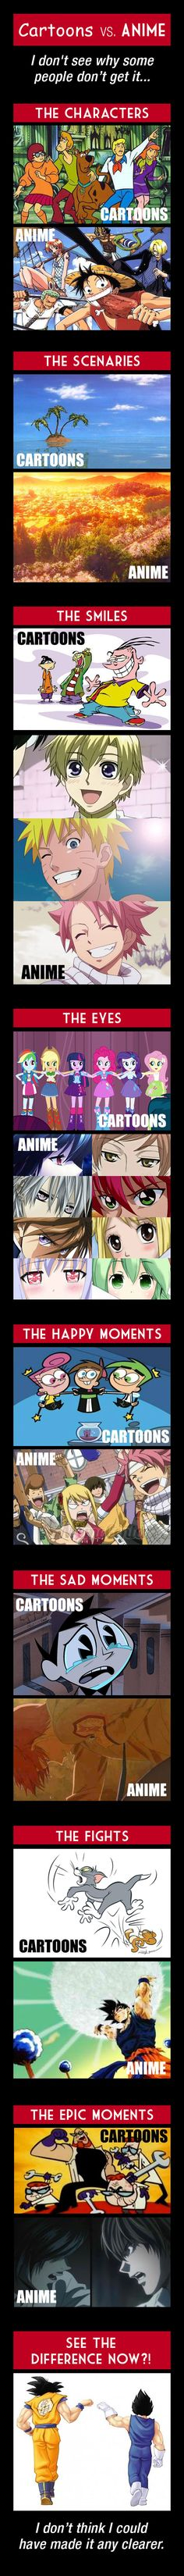 Natsu, Zero, Otonashi, L, and Light... Couldn't have agreed more... Except for My Little Pony. It's awesome :3